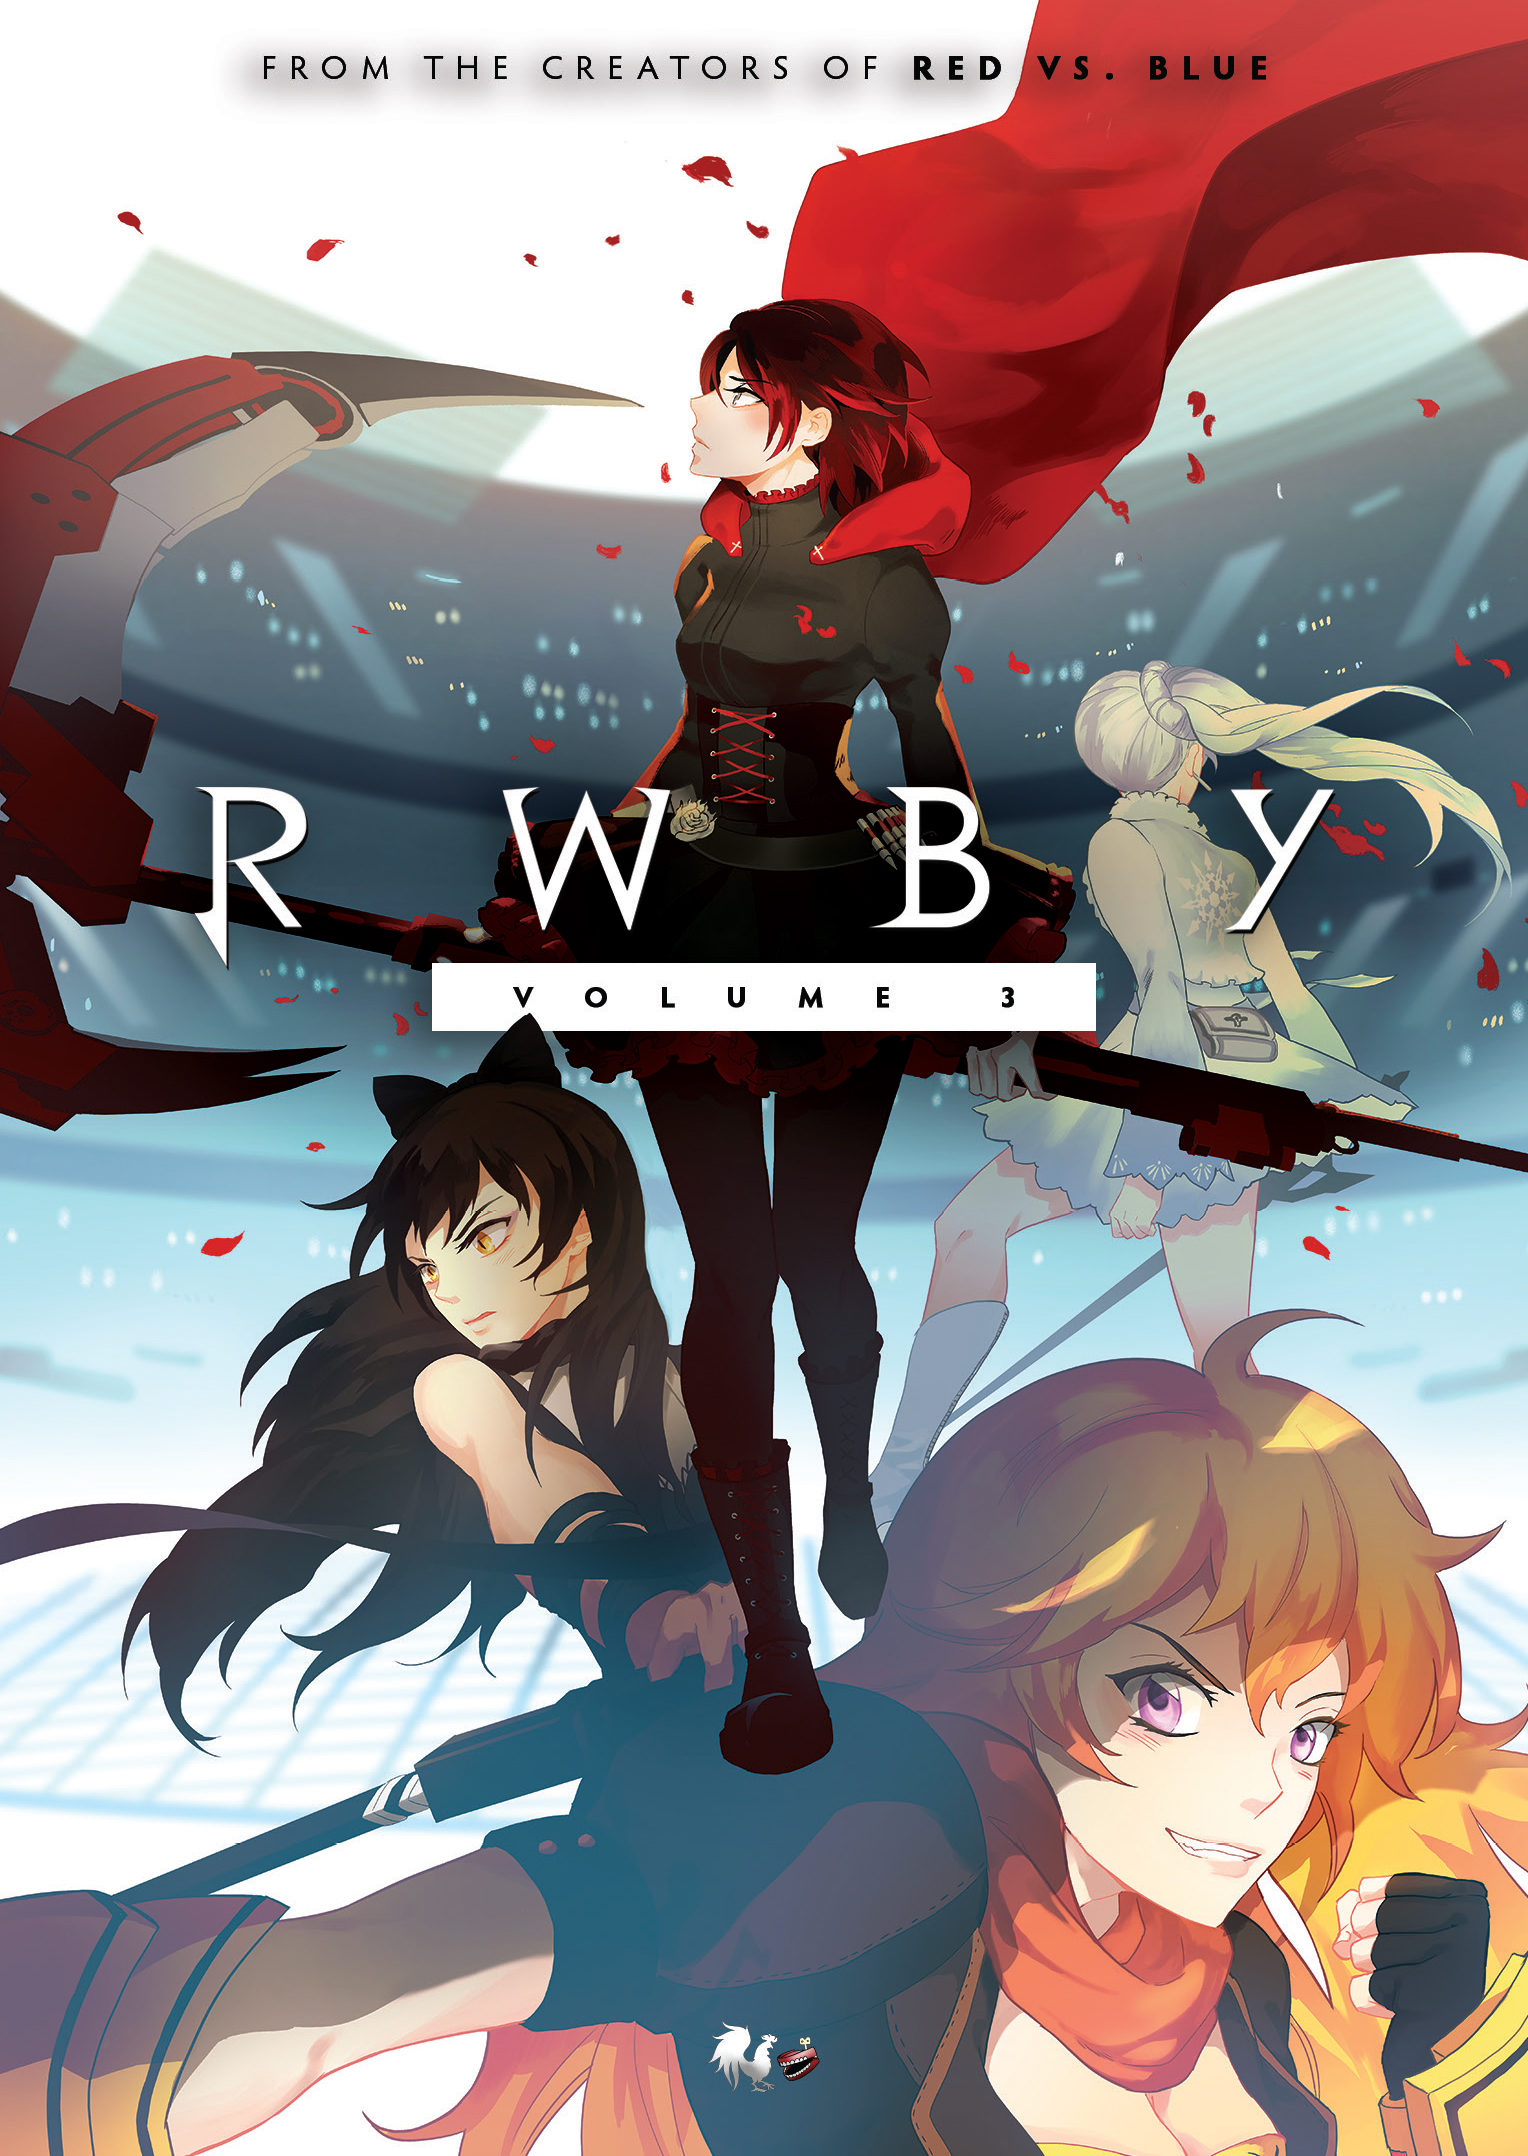 Rwby Volume 3 on cosplay rwby vol 4